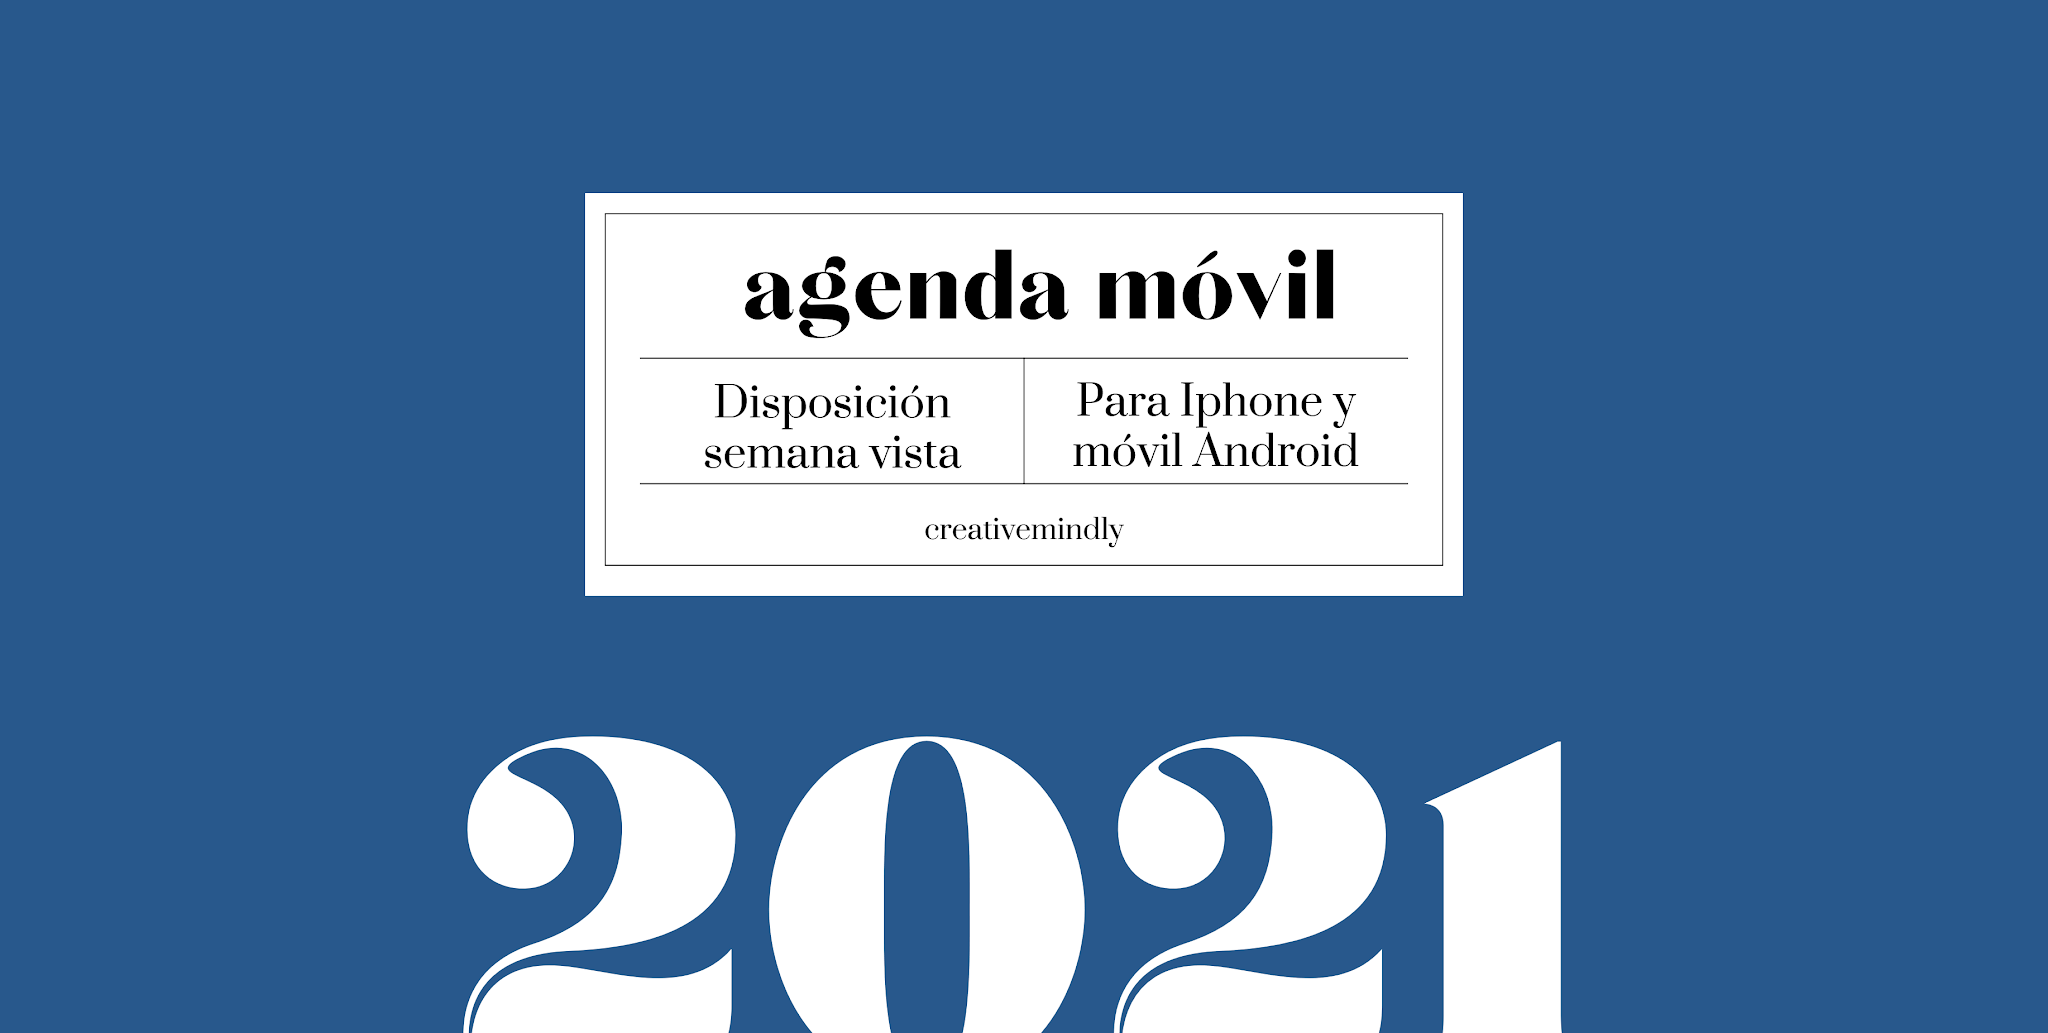 agenda movil iphone 2021